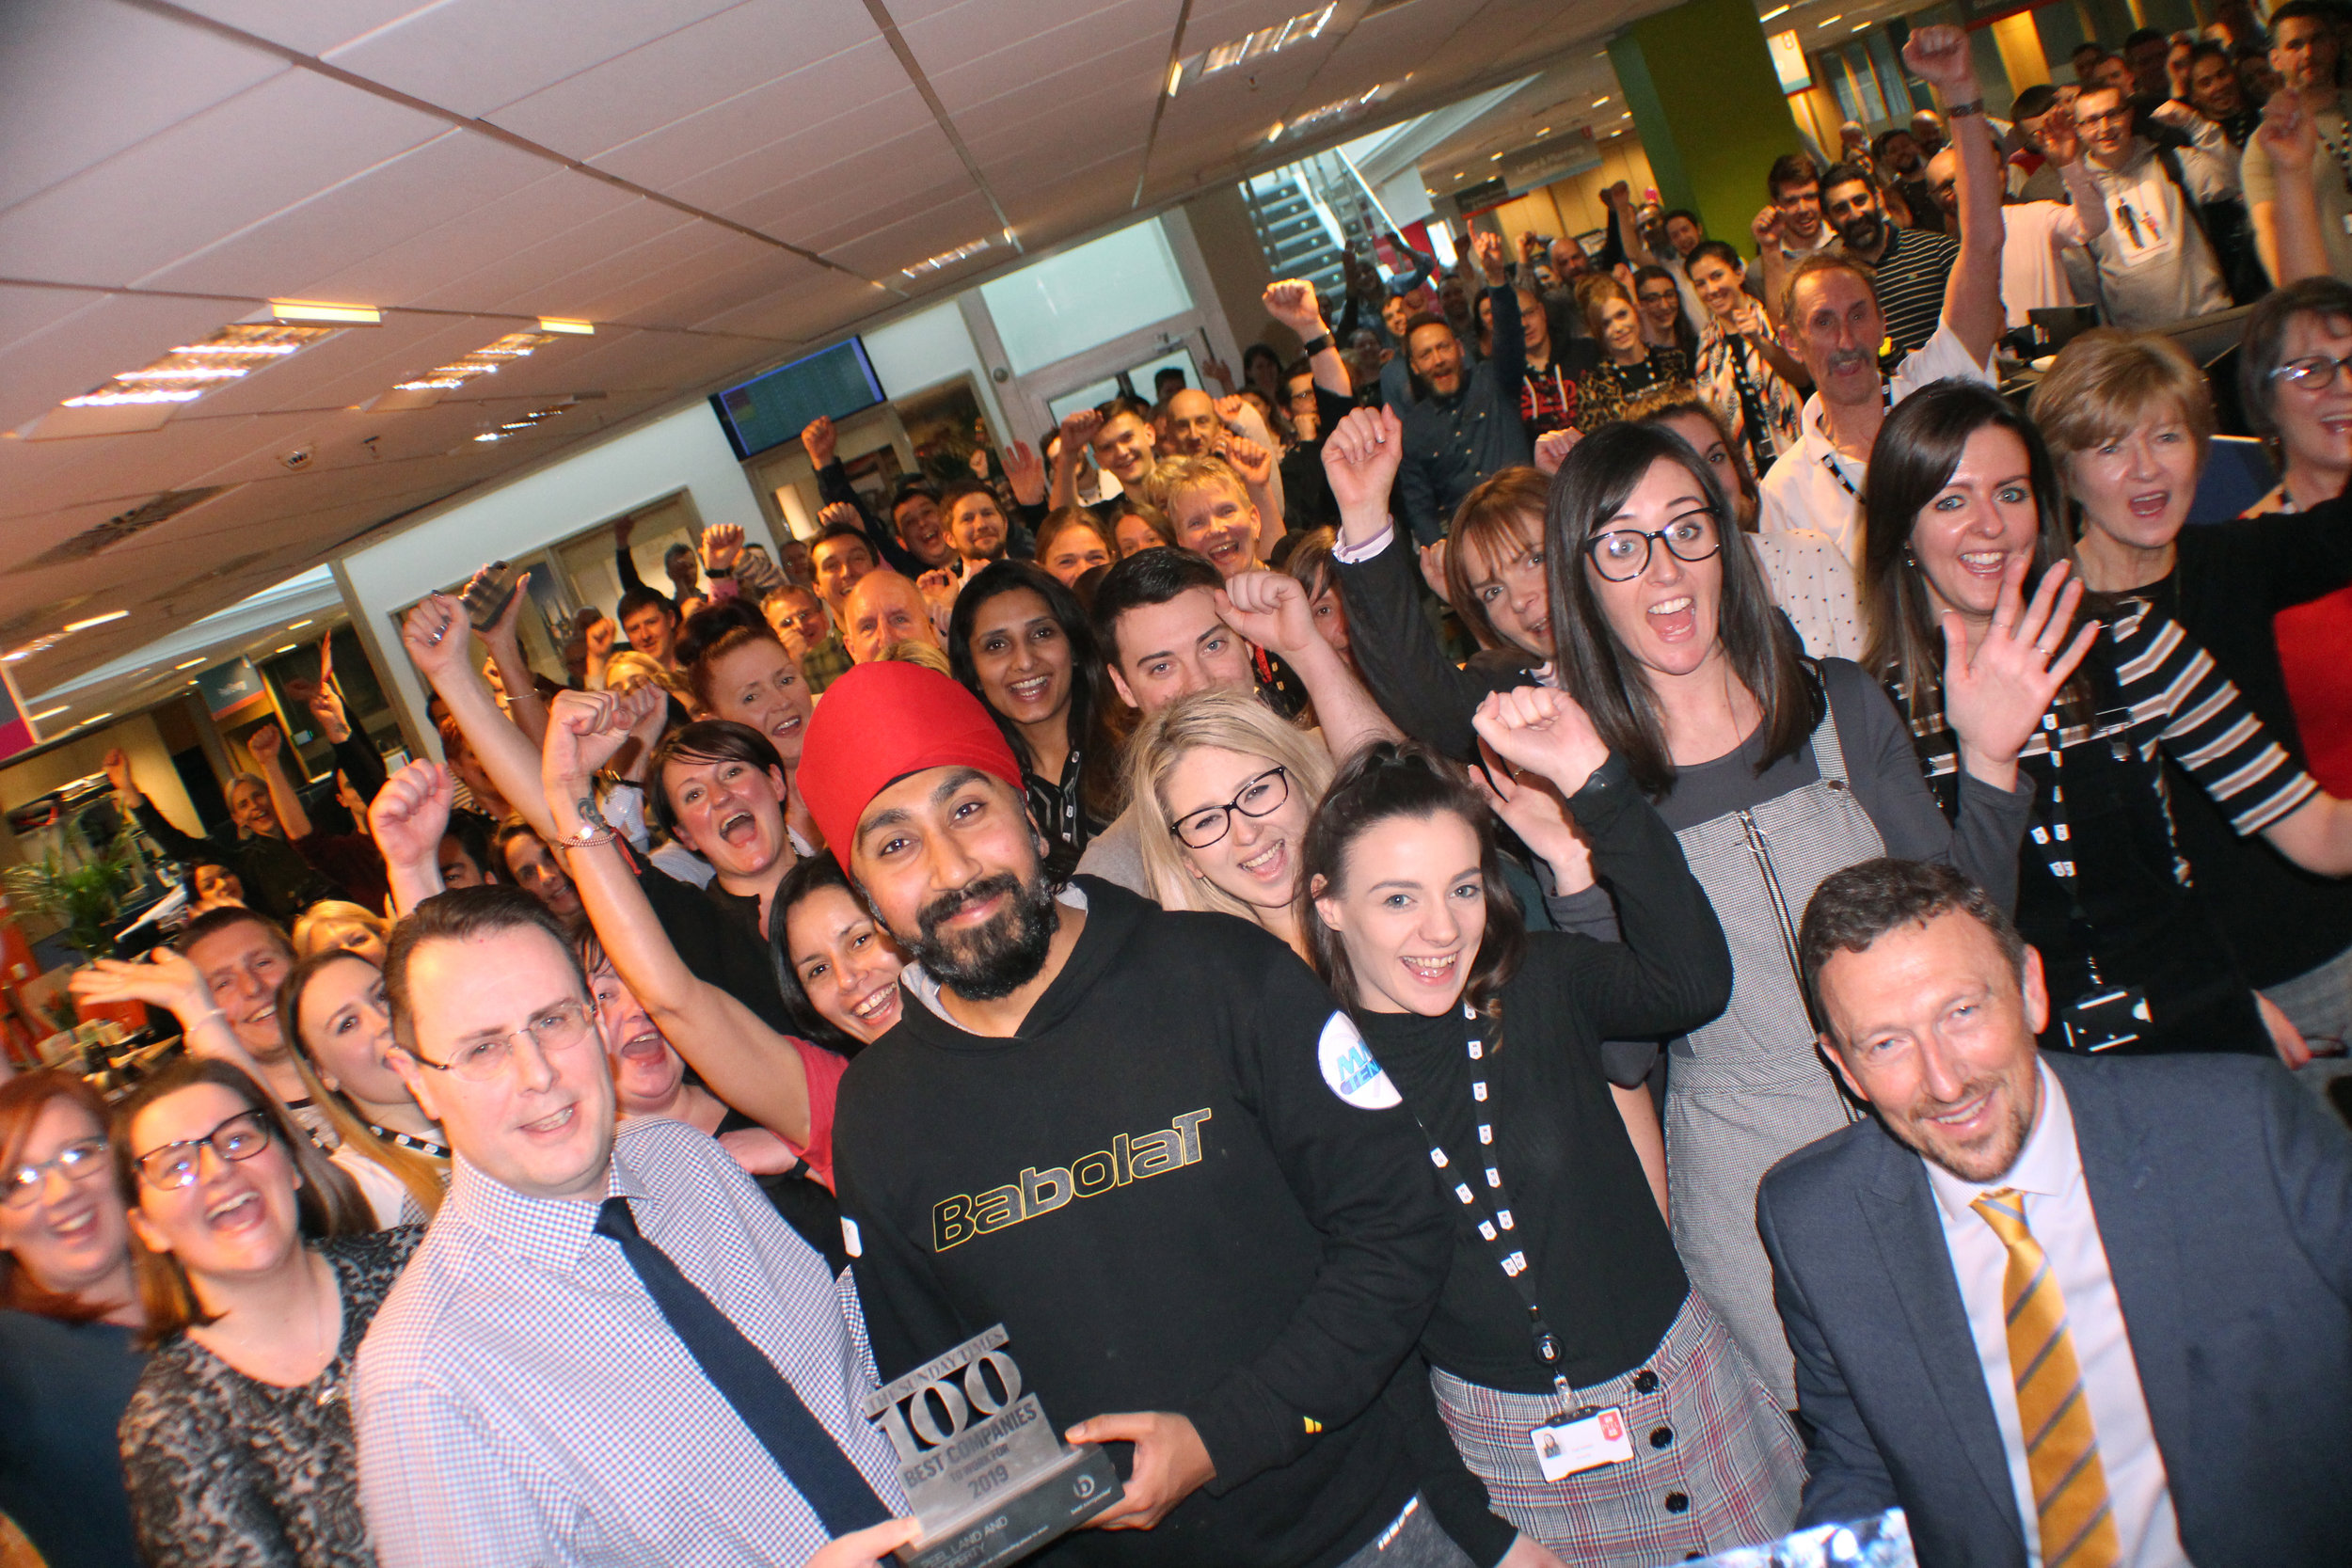 Peel L&P staff celebrate being number 79 on The Sunday Times top 100 companies to work for list.